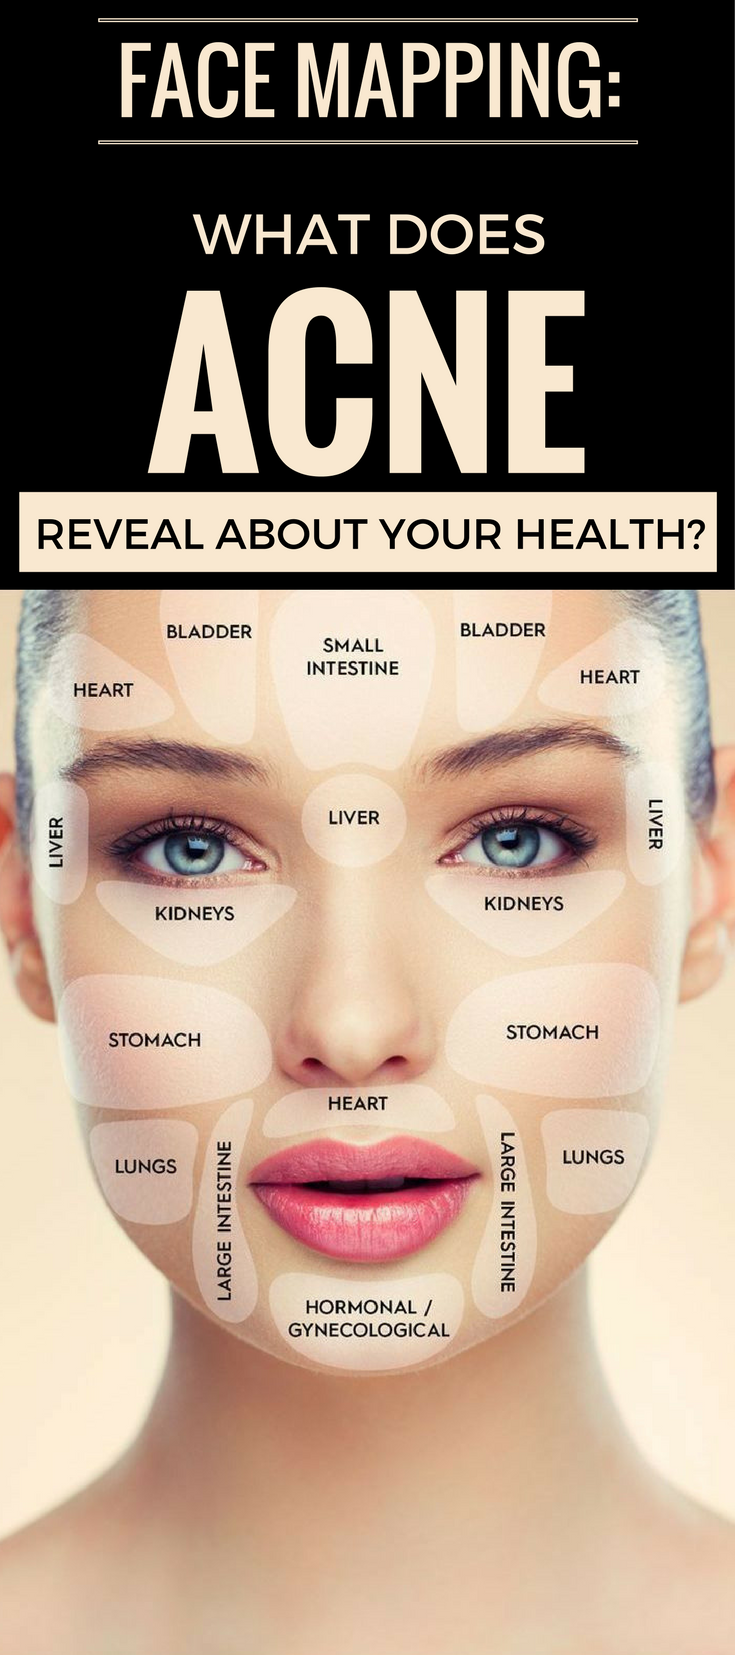 acne diagram face easy wiring diagrams pimples on head face mapping what does acne reveal about [ 735 x 1655 Pixel ]